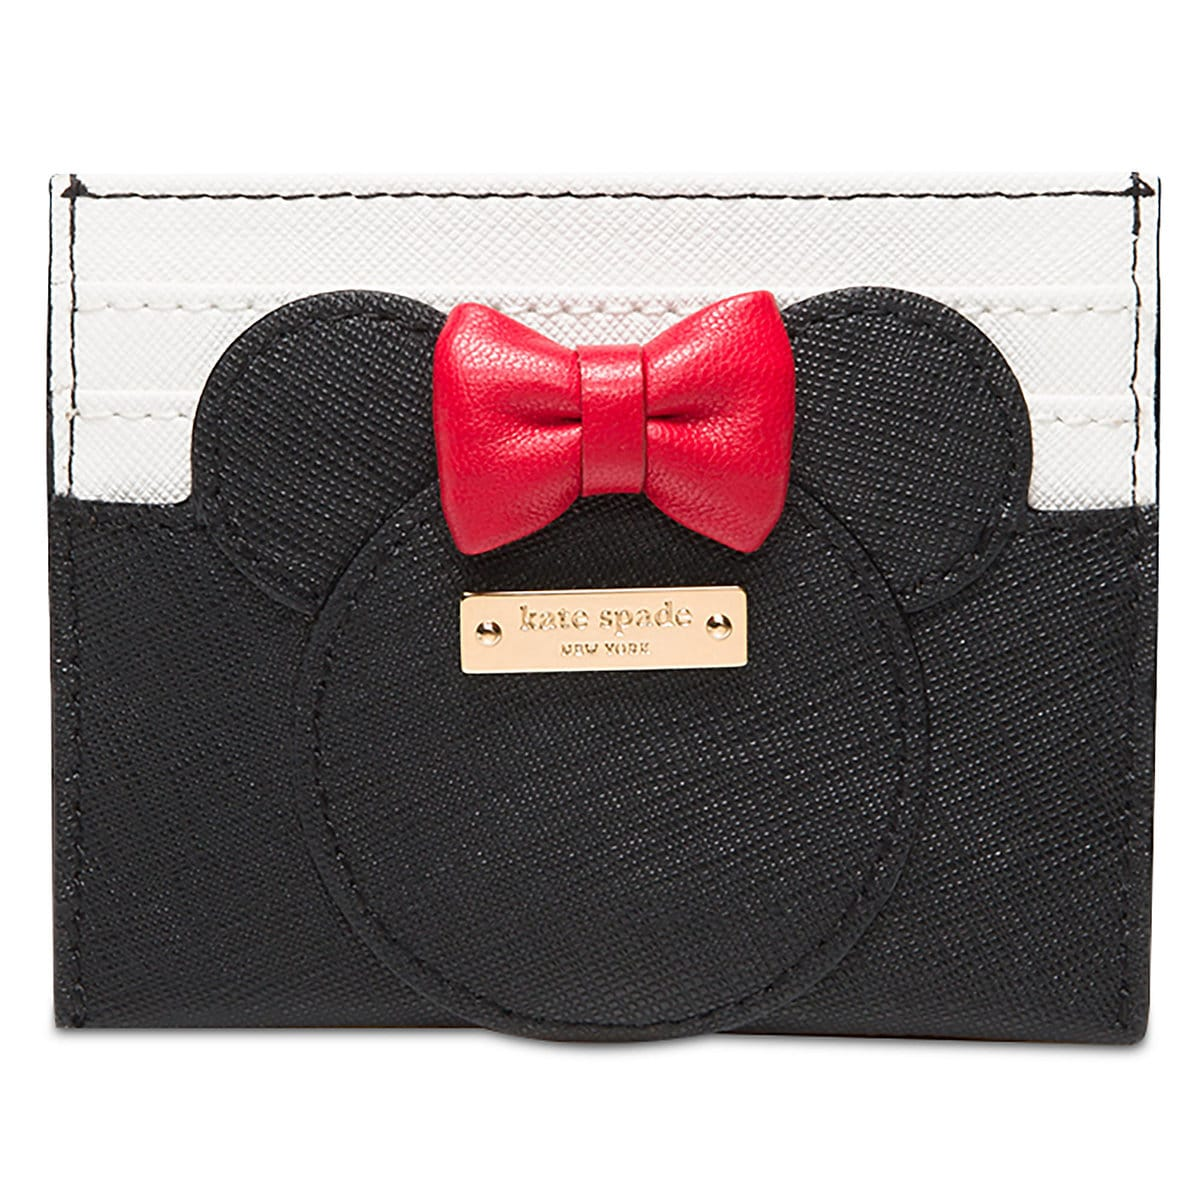 41aa9604c Minnie Mouse Card Case by Kate Spade New York